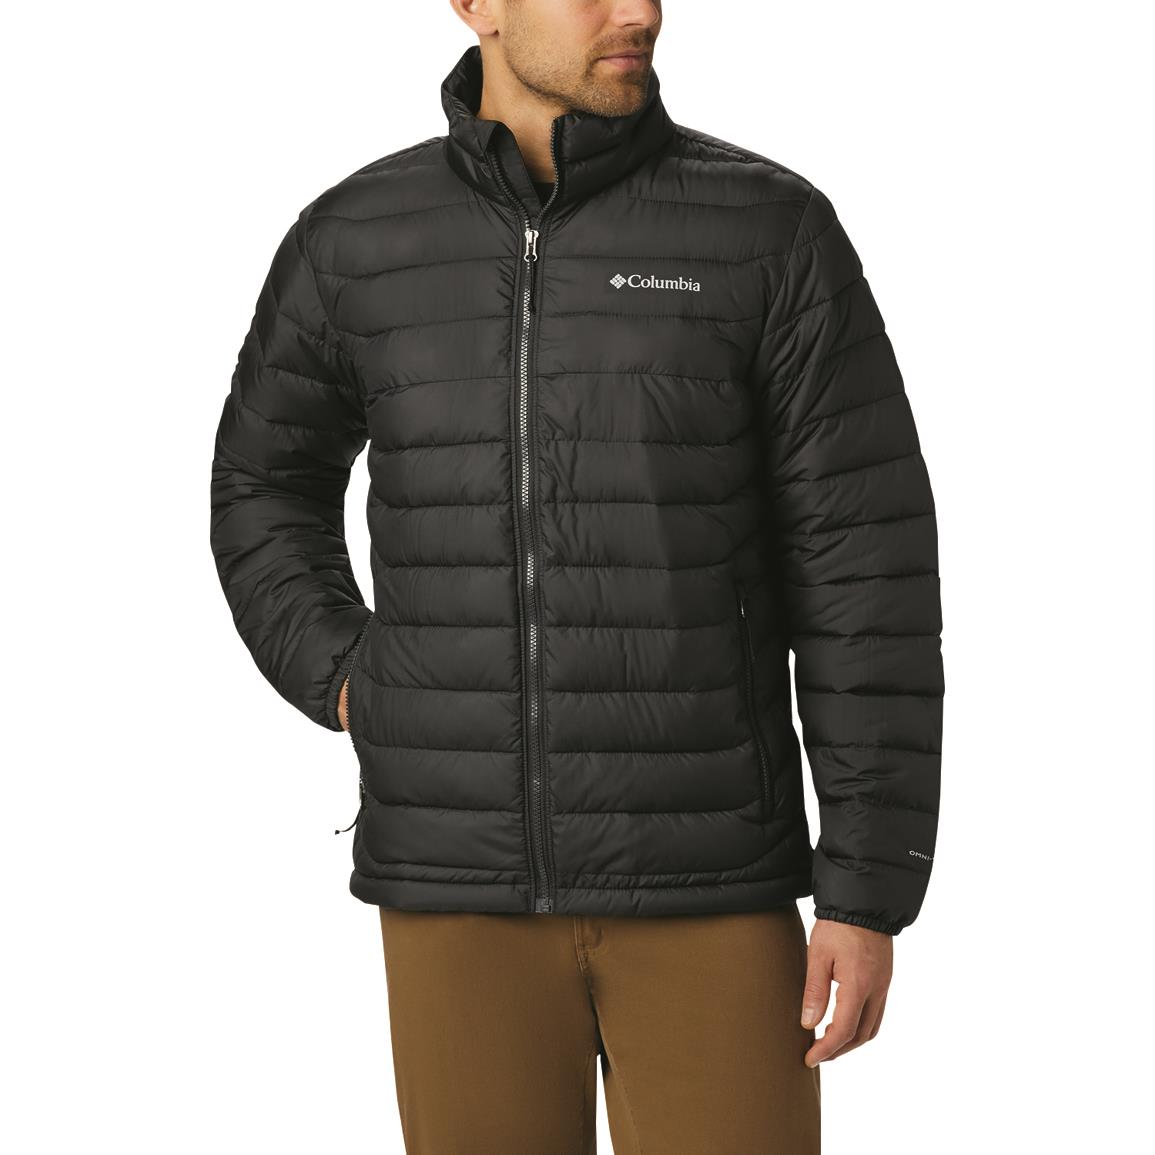 Columbia Men's Powder Lite Insulated Jacket, Black